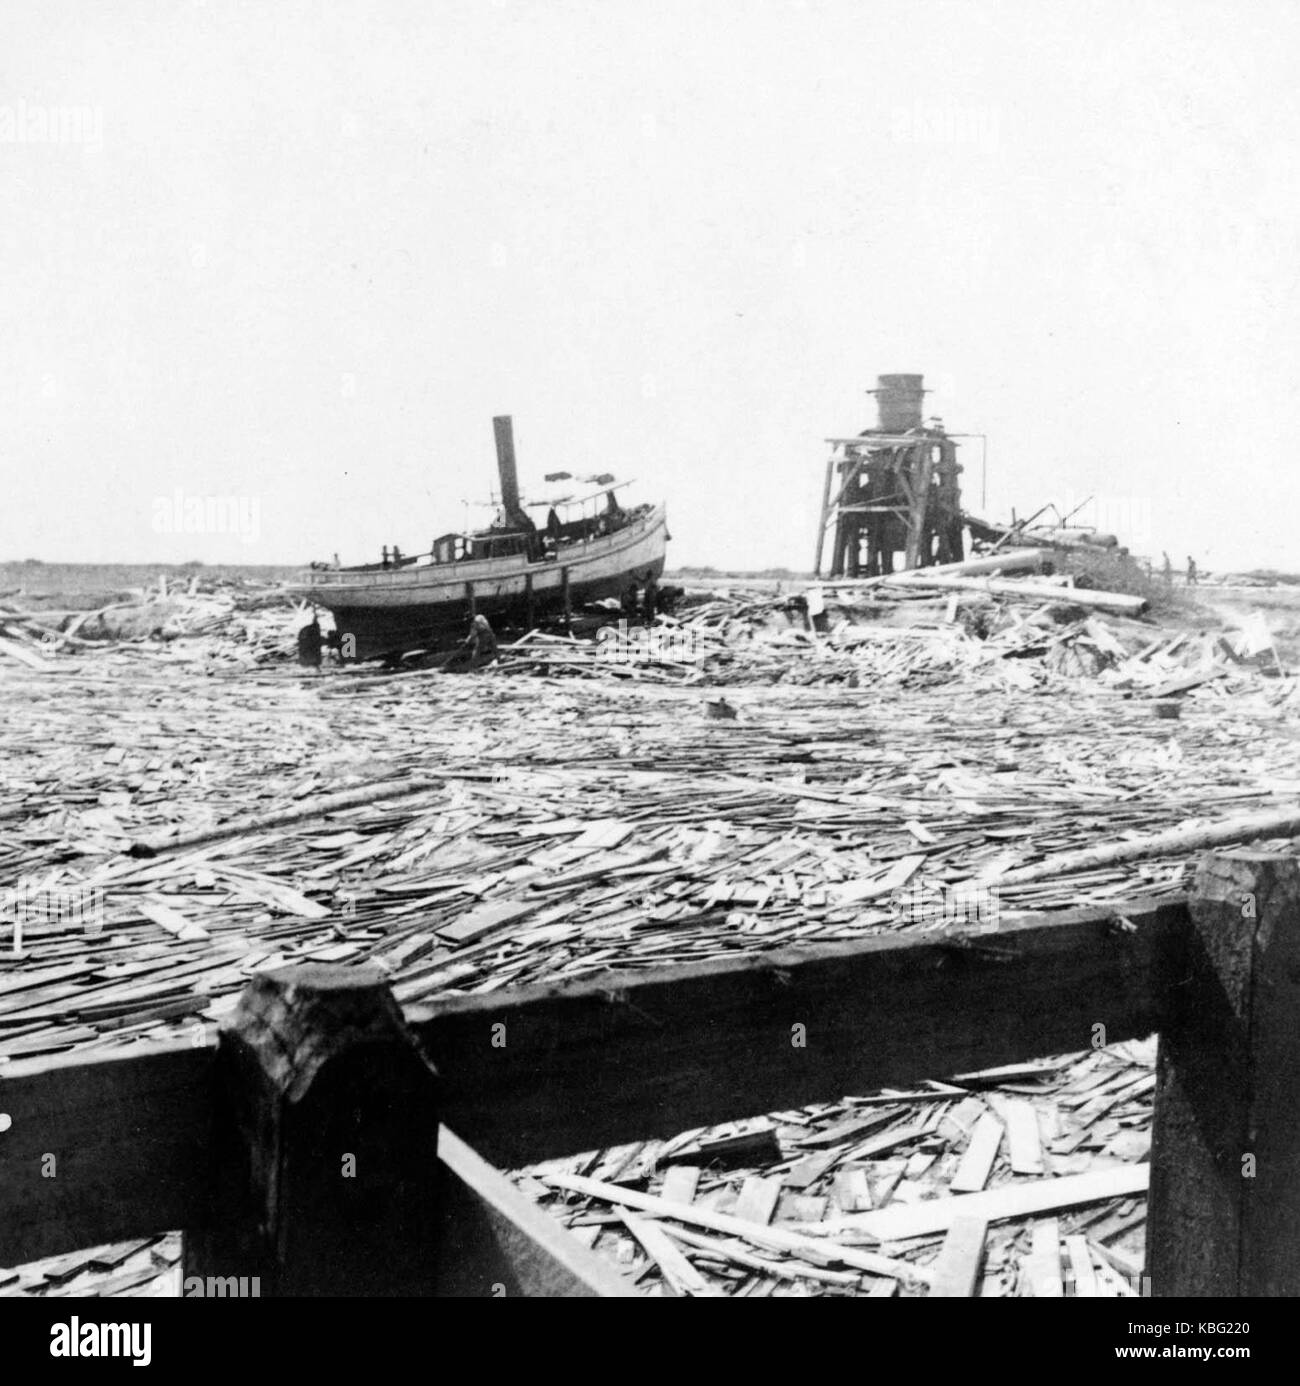 Floating wreckage near Texas City – typical scene for miles along the water front 1900 Galveston hurricane - Stock Image